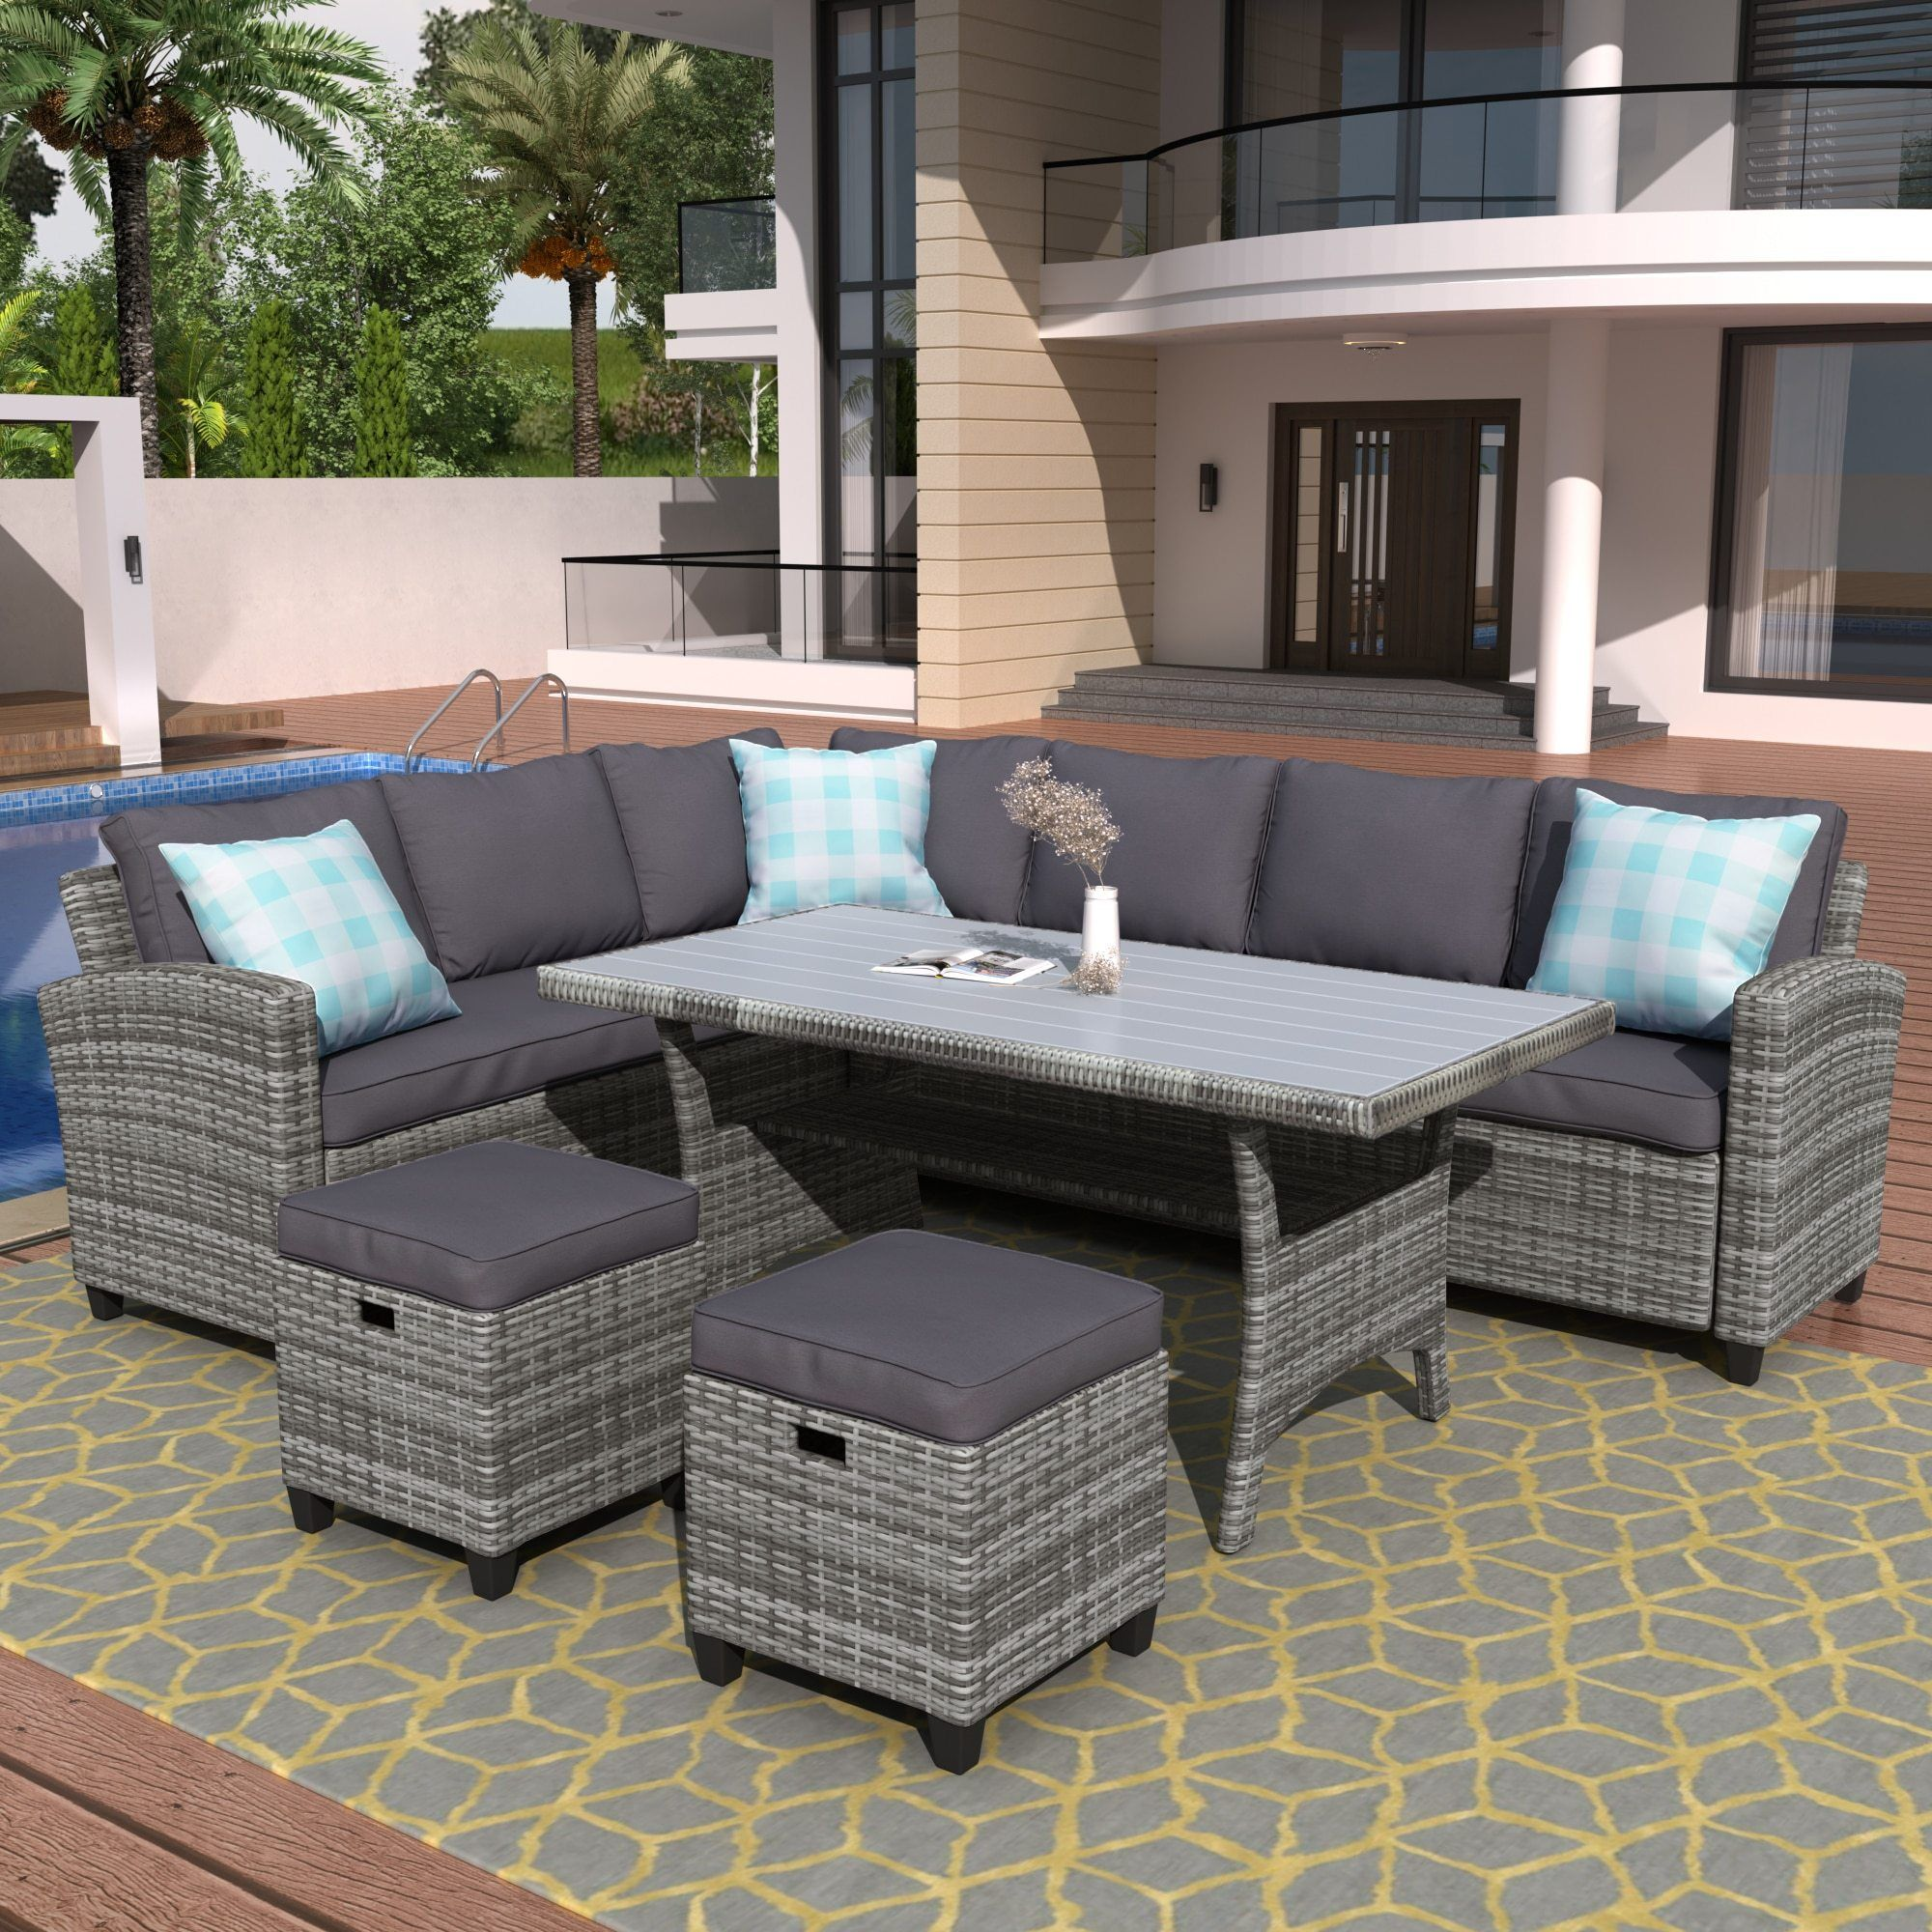 5 Pieces Outdoor Furniture Rattan Chair Table Patio Set Wicker Sofa With Ottoman In 2021 Patio Furniture Sets Outdoor Furniture Sets Wicker Sofa Outdoor